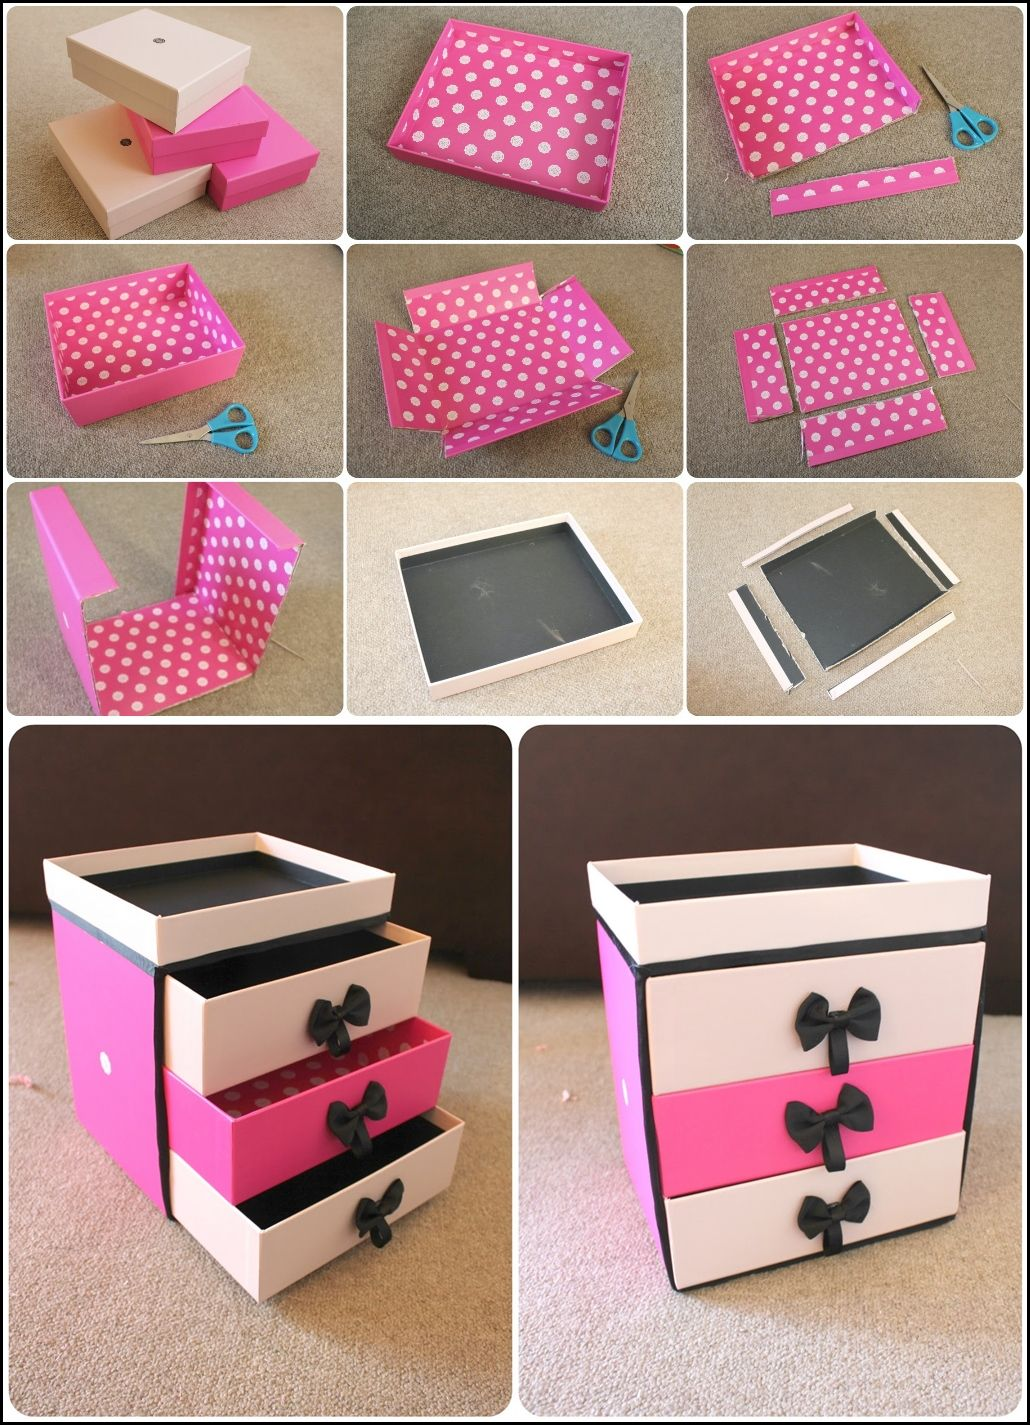 Easy To Make Makeup Storage Using Shoe Boxes   Find Fun Art Projects To Do  At Home And Arts And Crafts Ideas